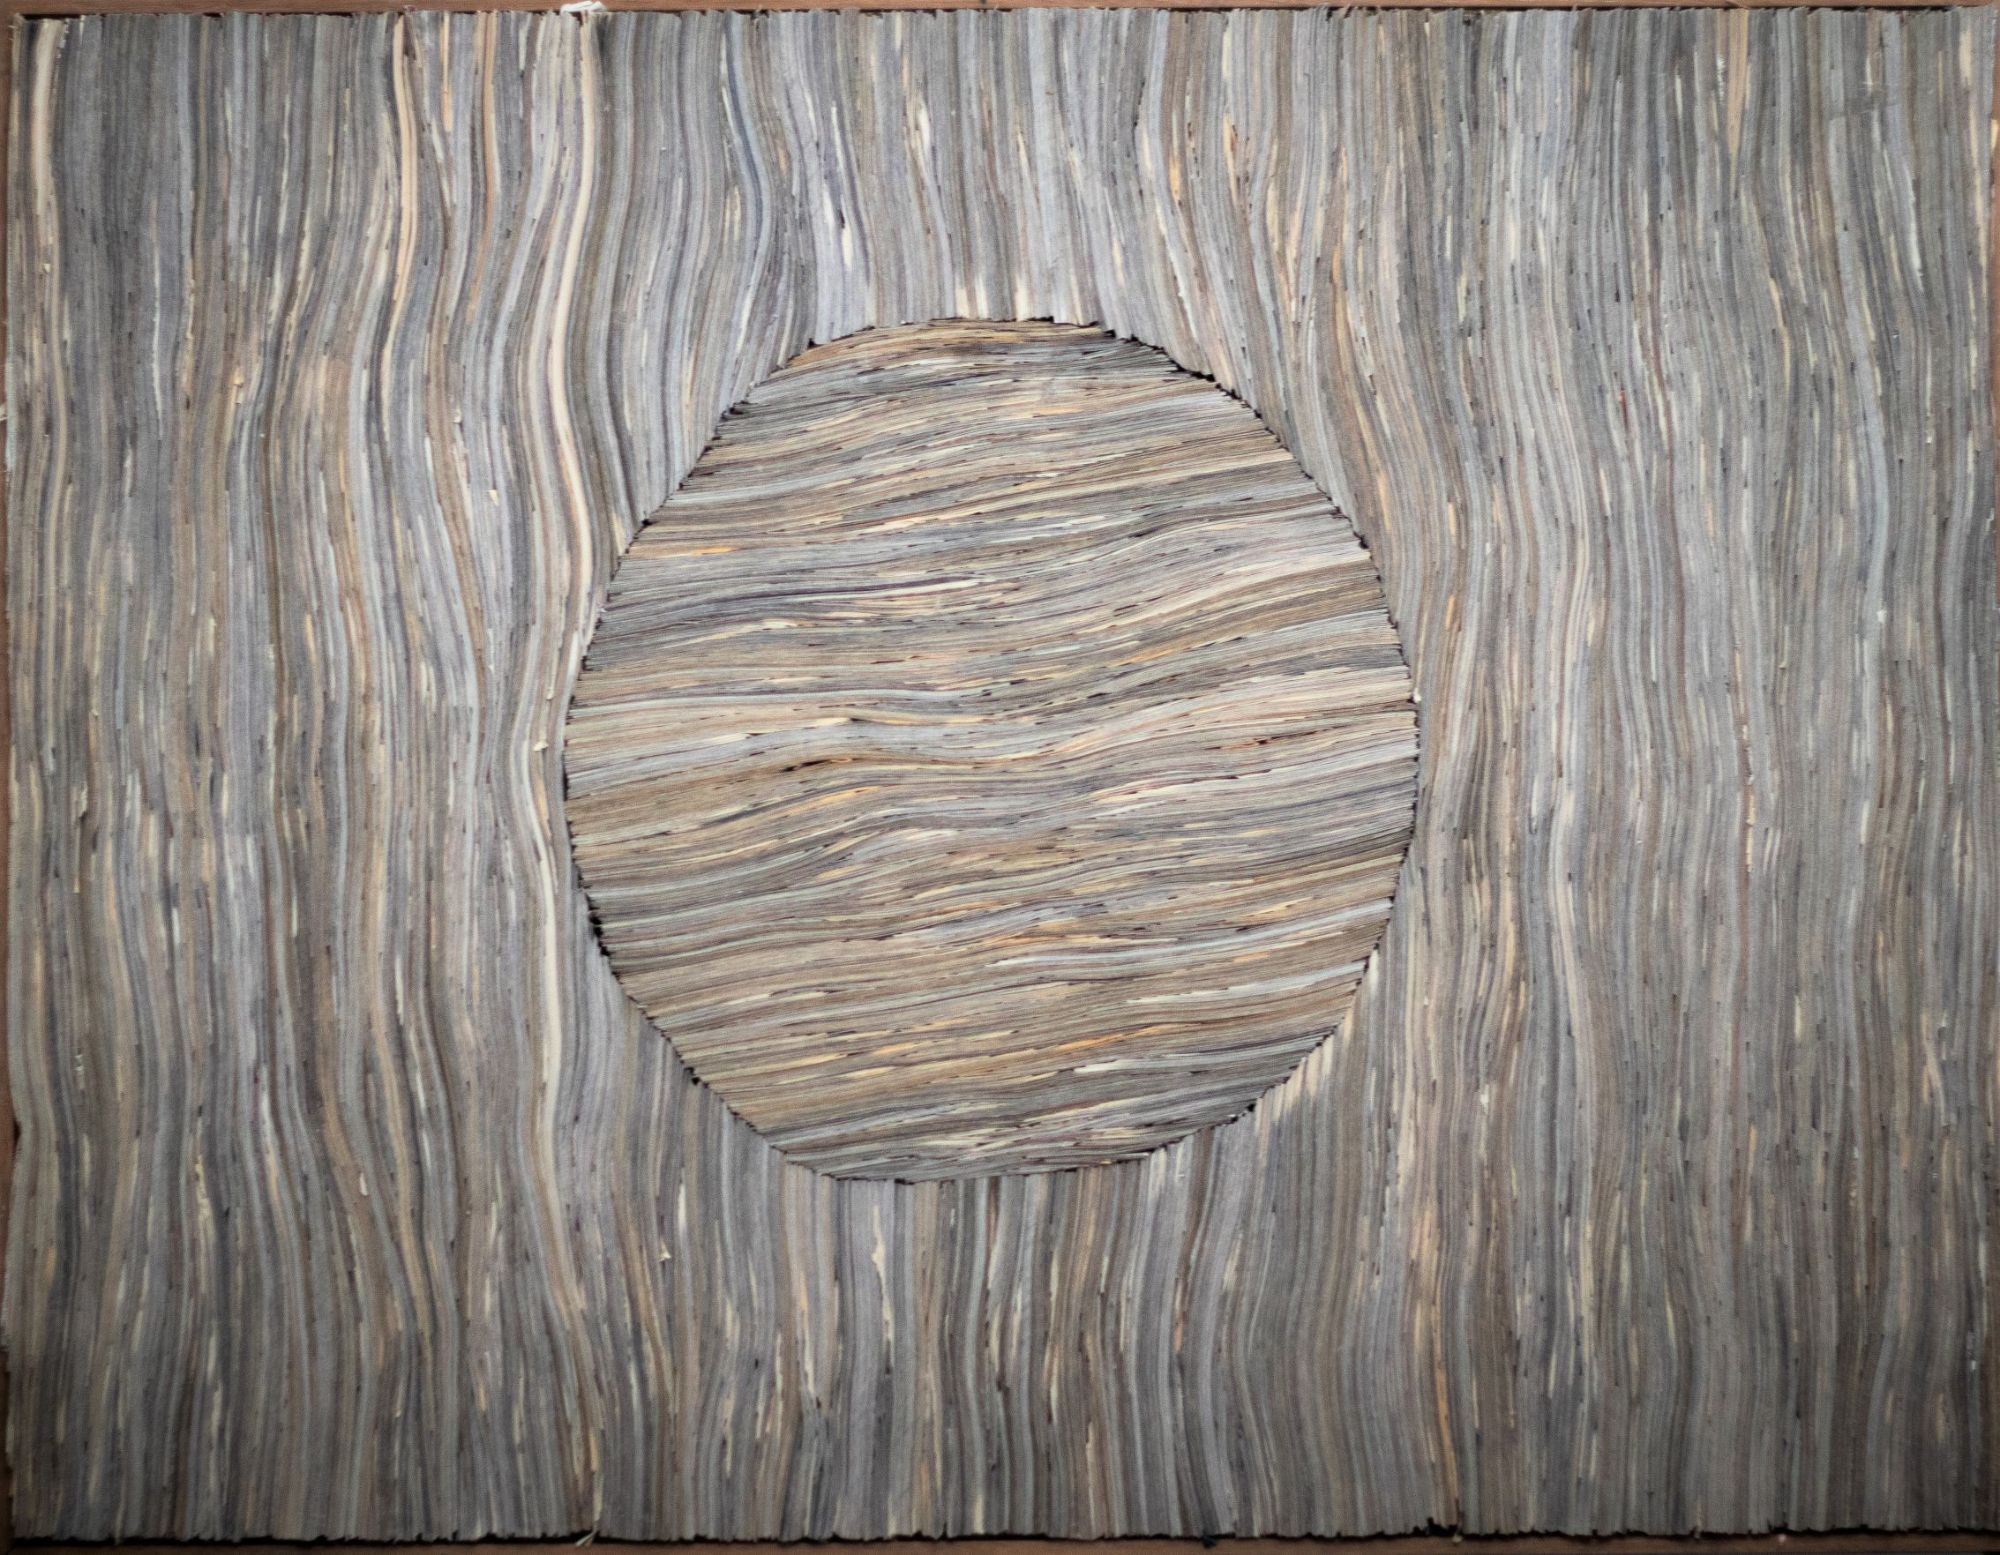 newsapaper artwork by Tracey Falcon, title PRESS newspaper strips tightly packed to resemble wood with a large circle in the middle